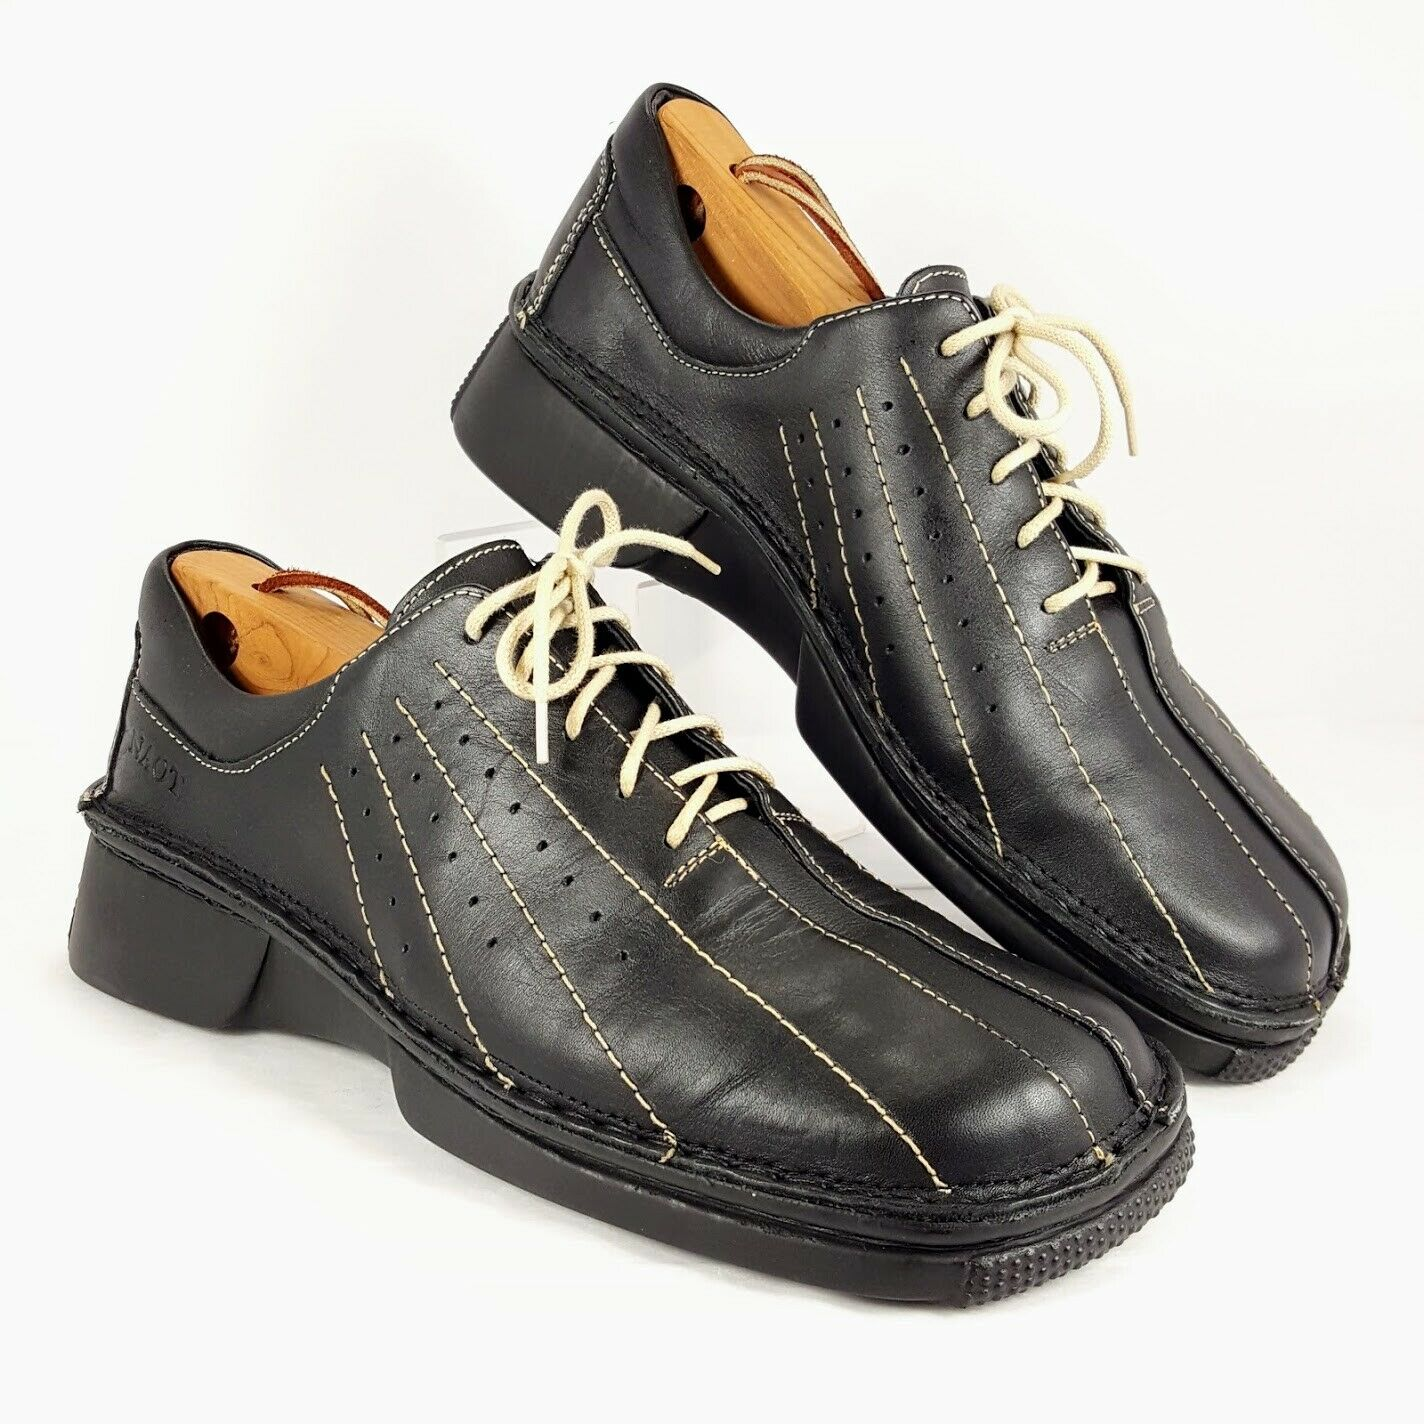 NAOT Men's Funky Disco 70s style Lace Up Black Leather Sneakers size 9 - 9.5 NEW